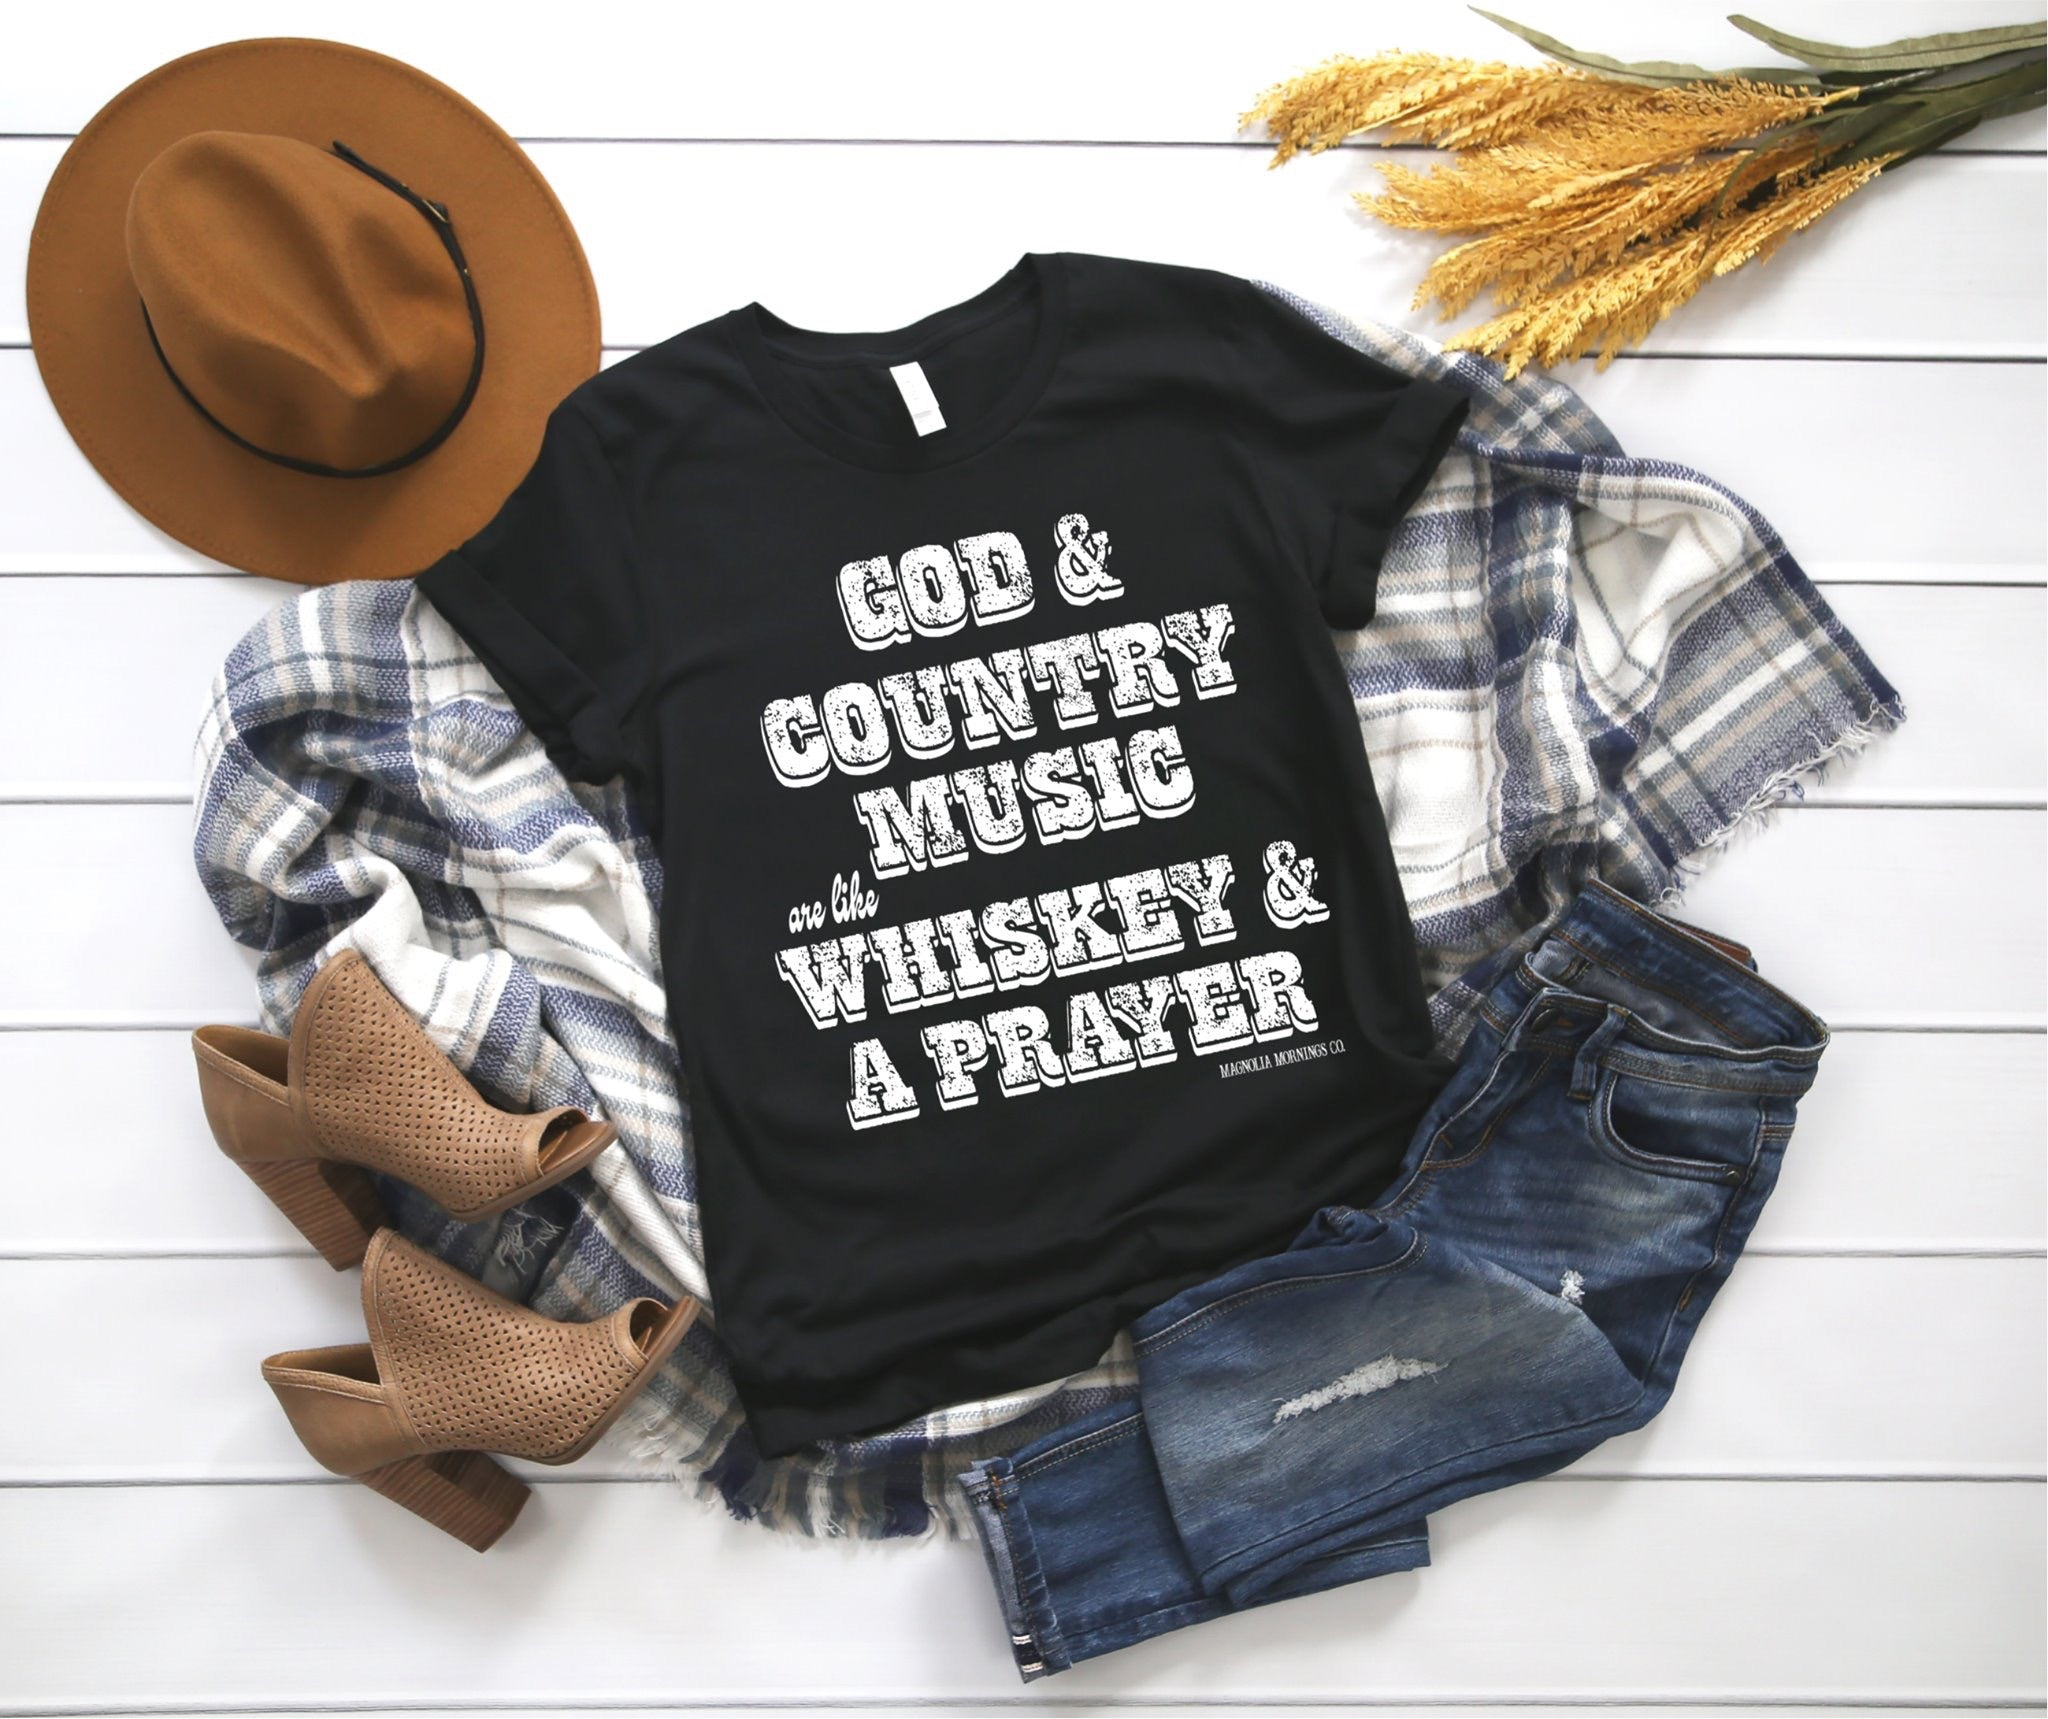 God & Country Music